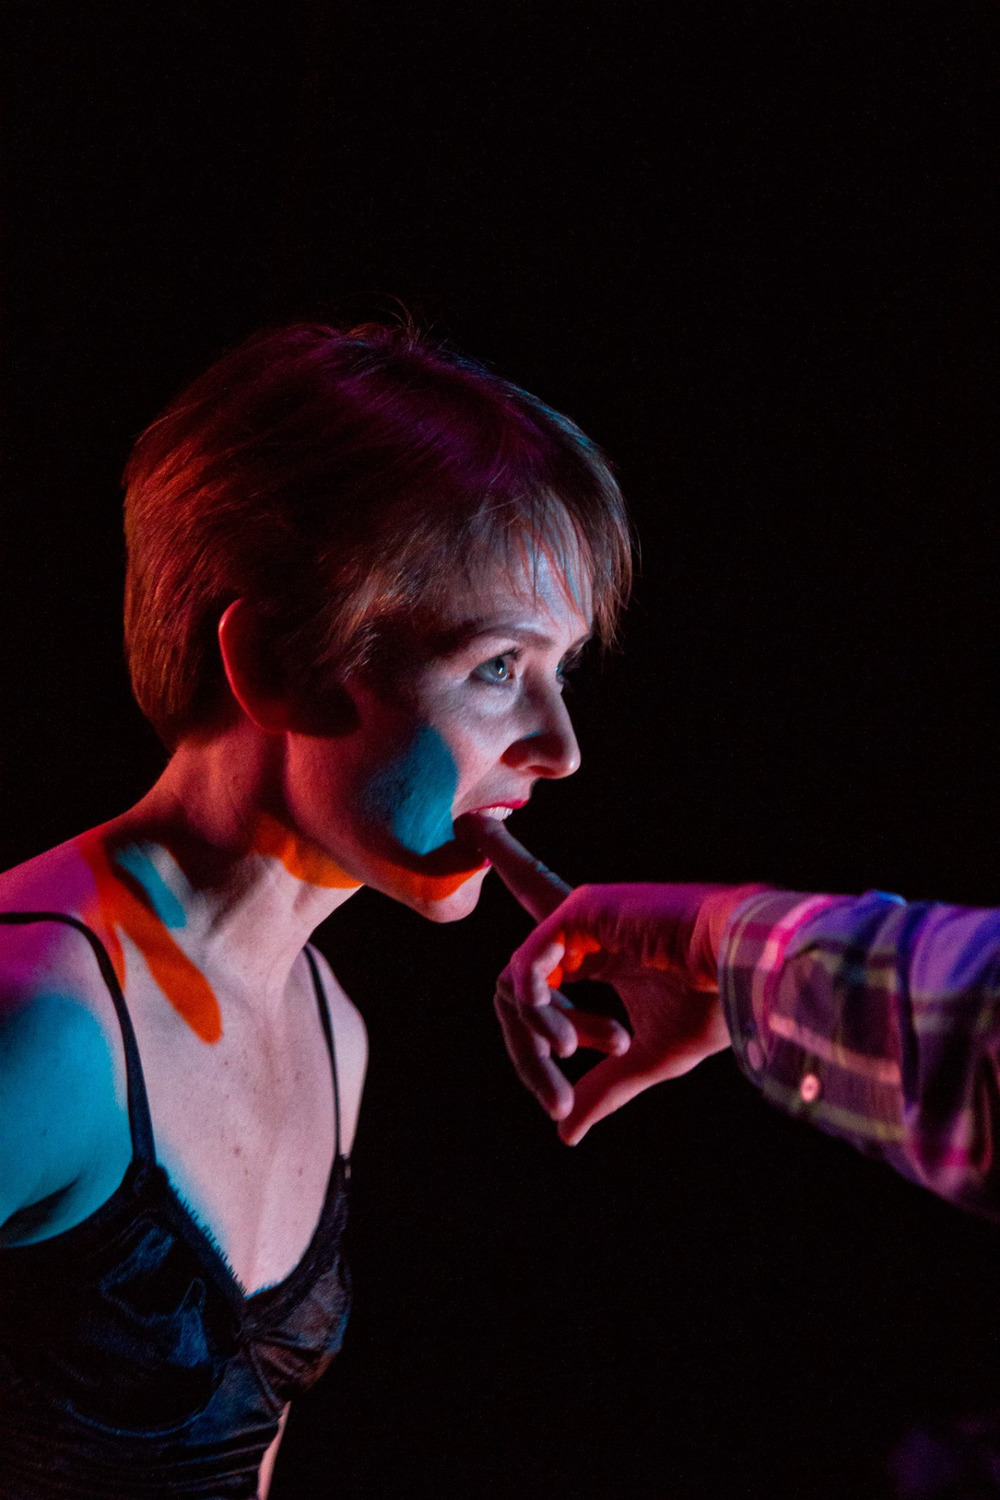 Jennifer Mabus in 'Cosmic Sword' at ReverbDance Festival in NYC    Photo by Stephanie Crousillat